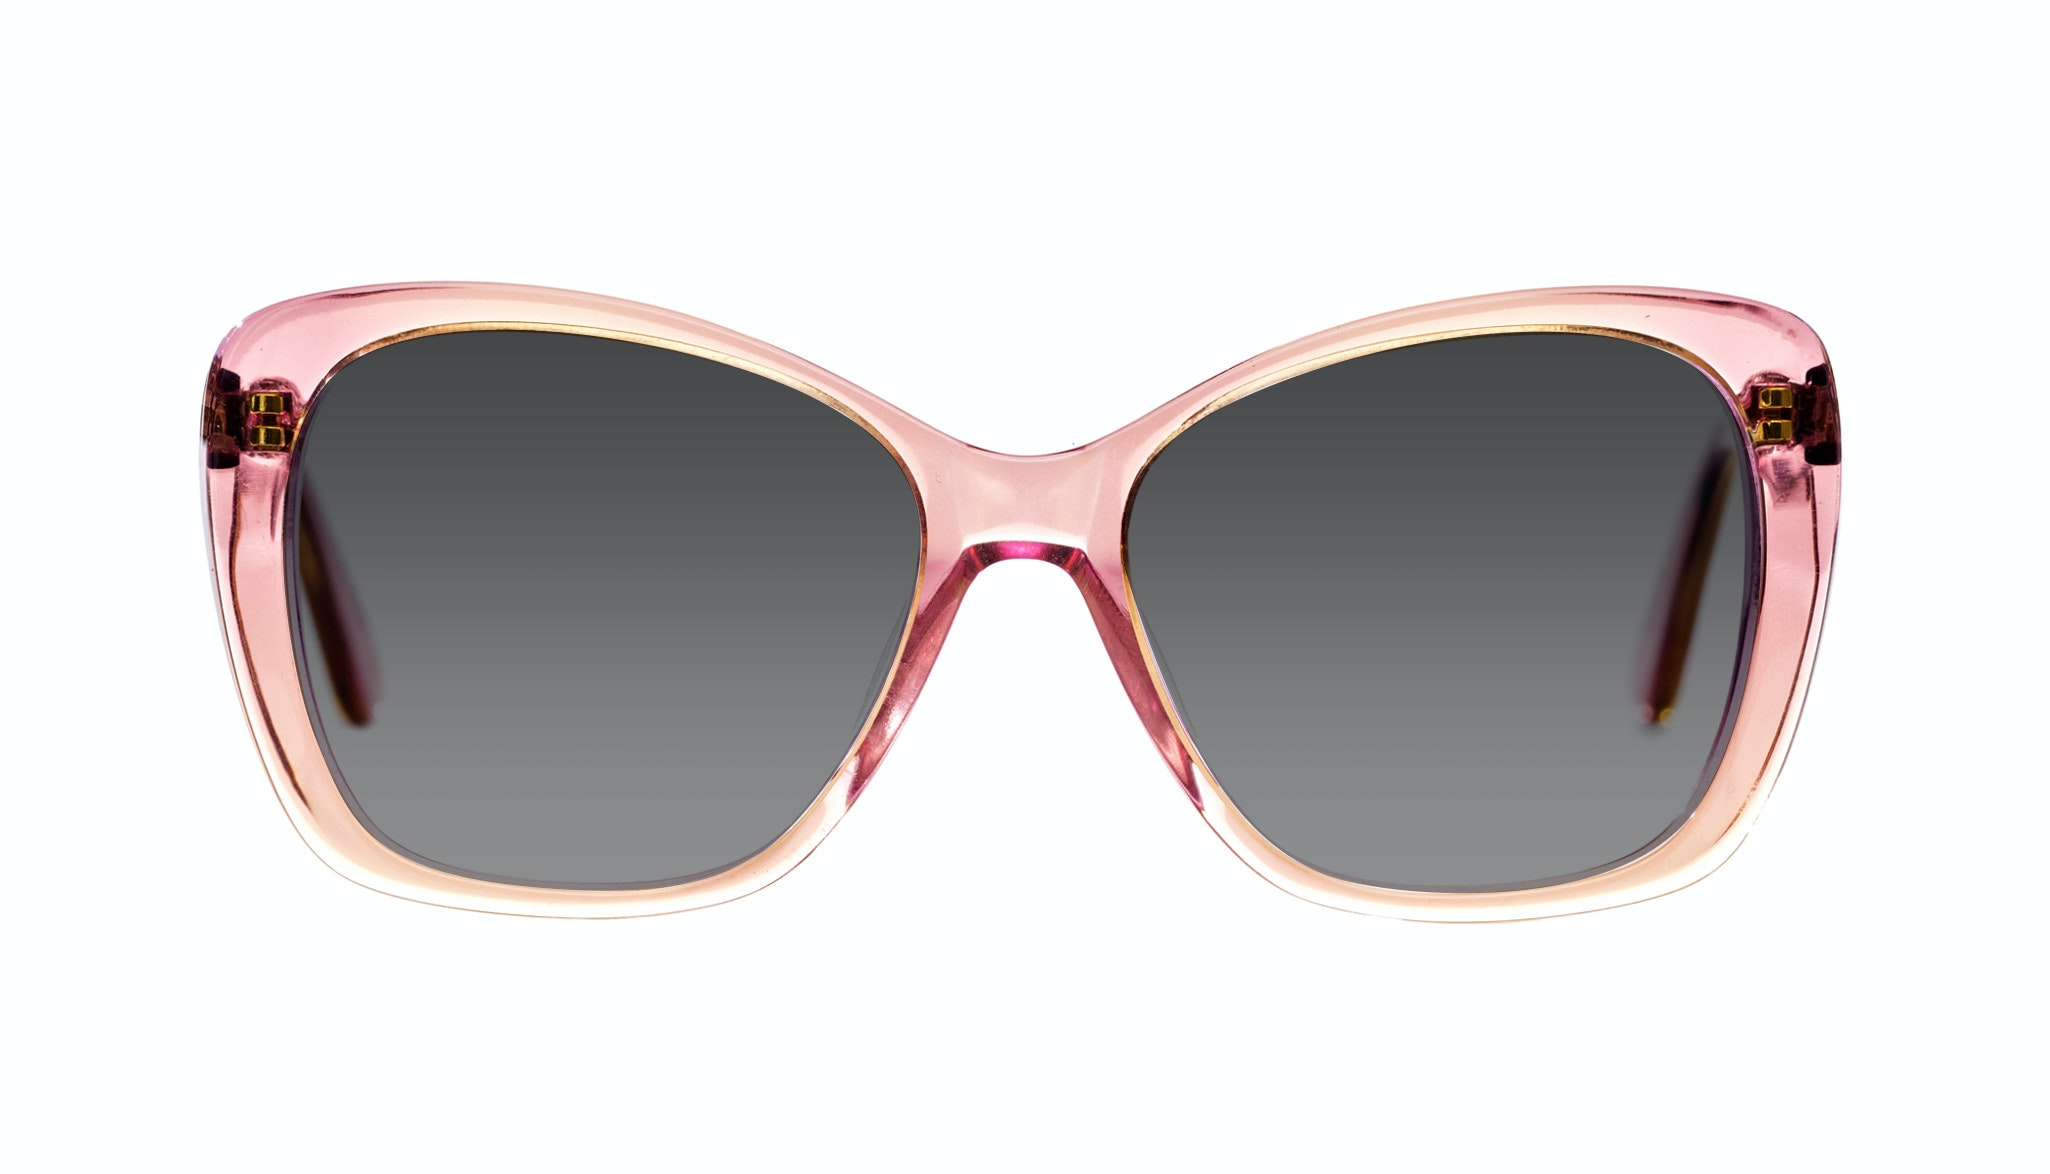 Affordable Fashion Glasses Cat Eye Square Sunglasses Women Charm Pink Haze